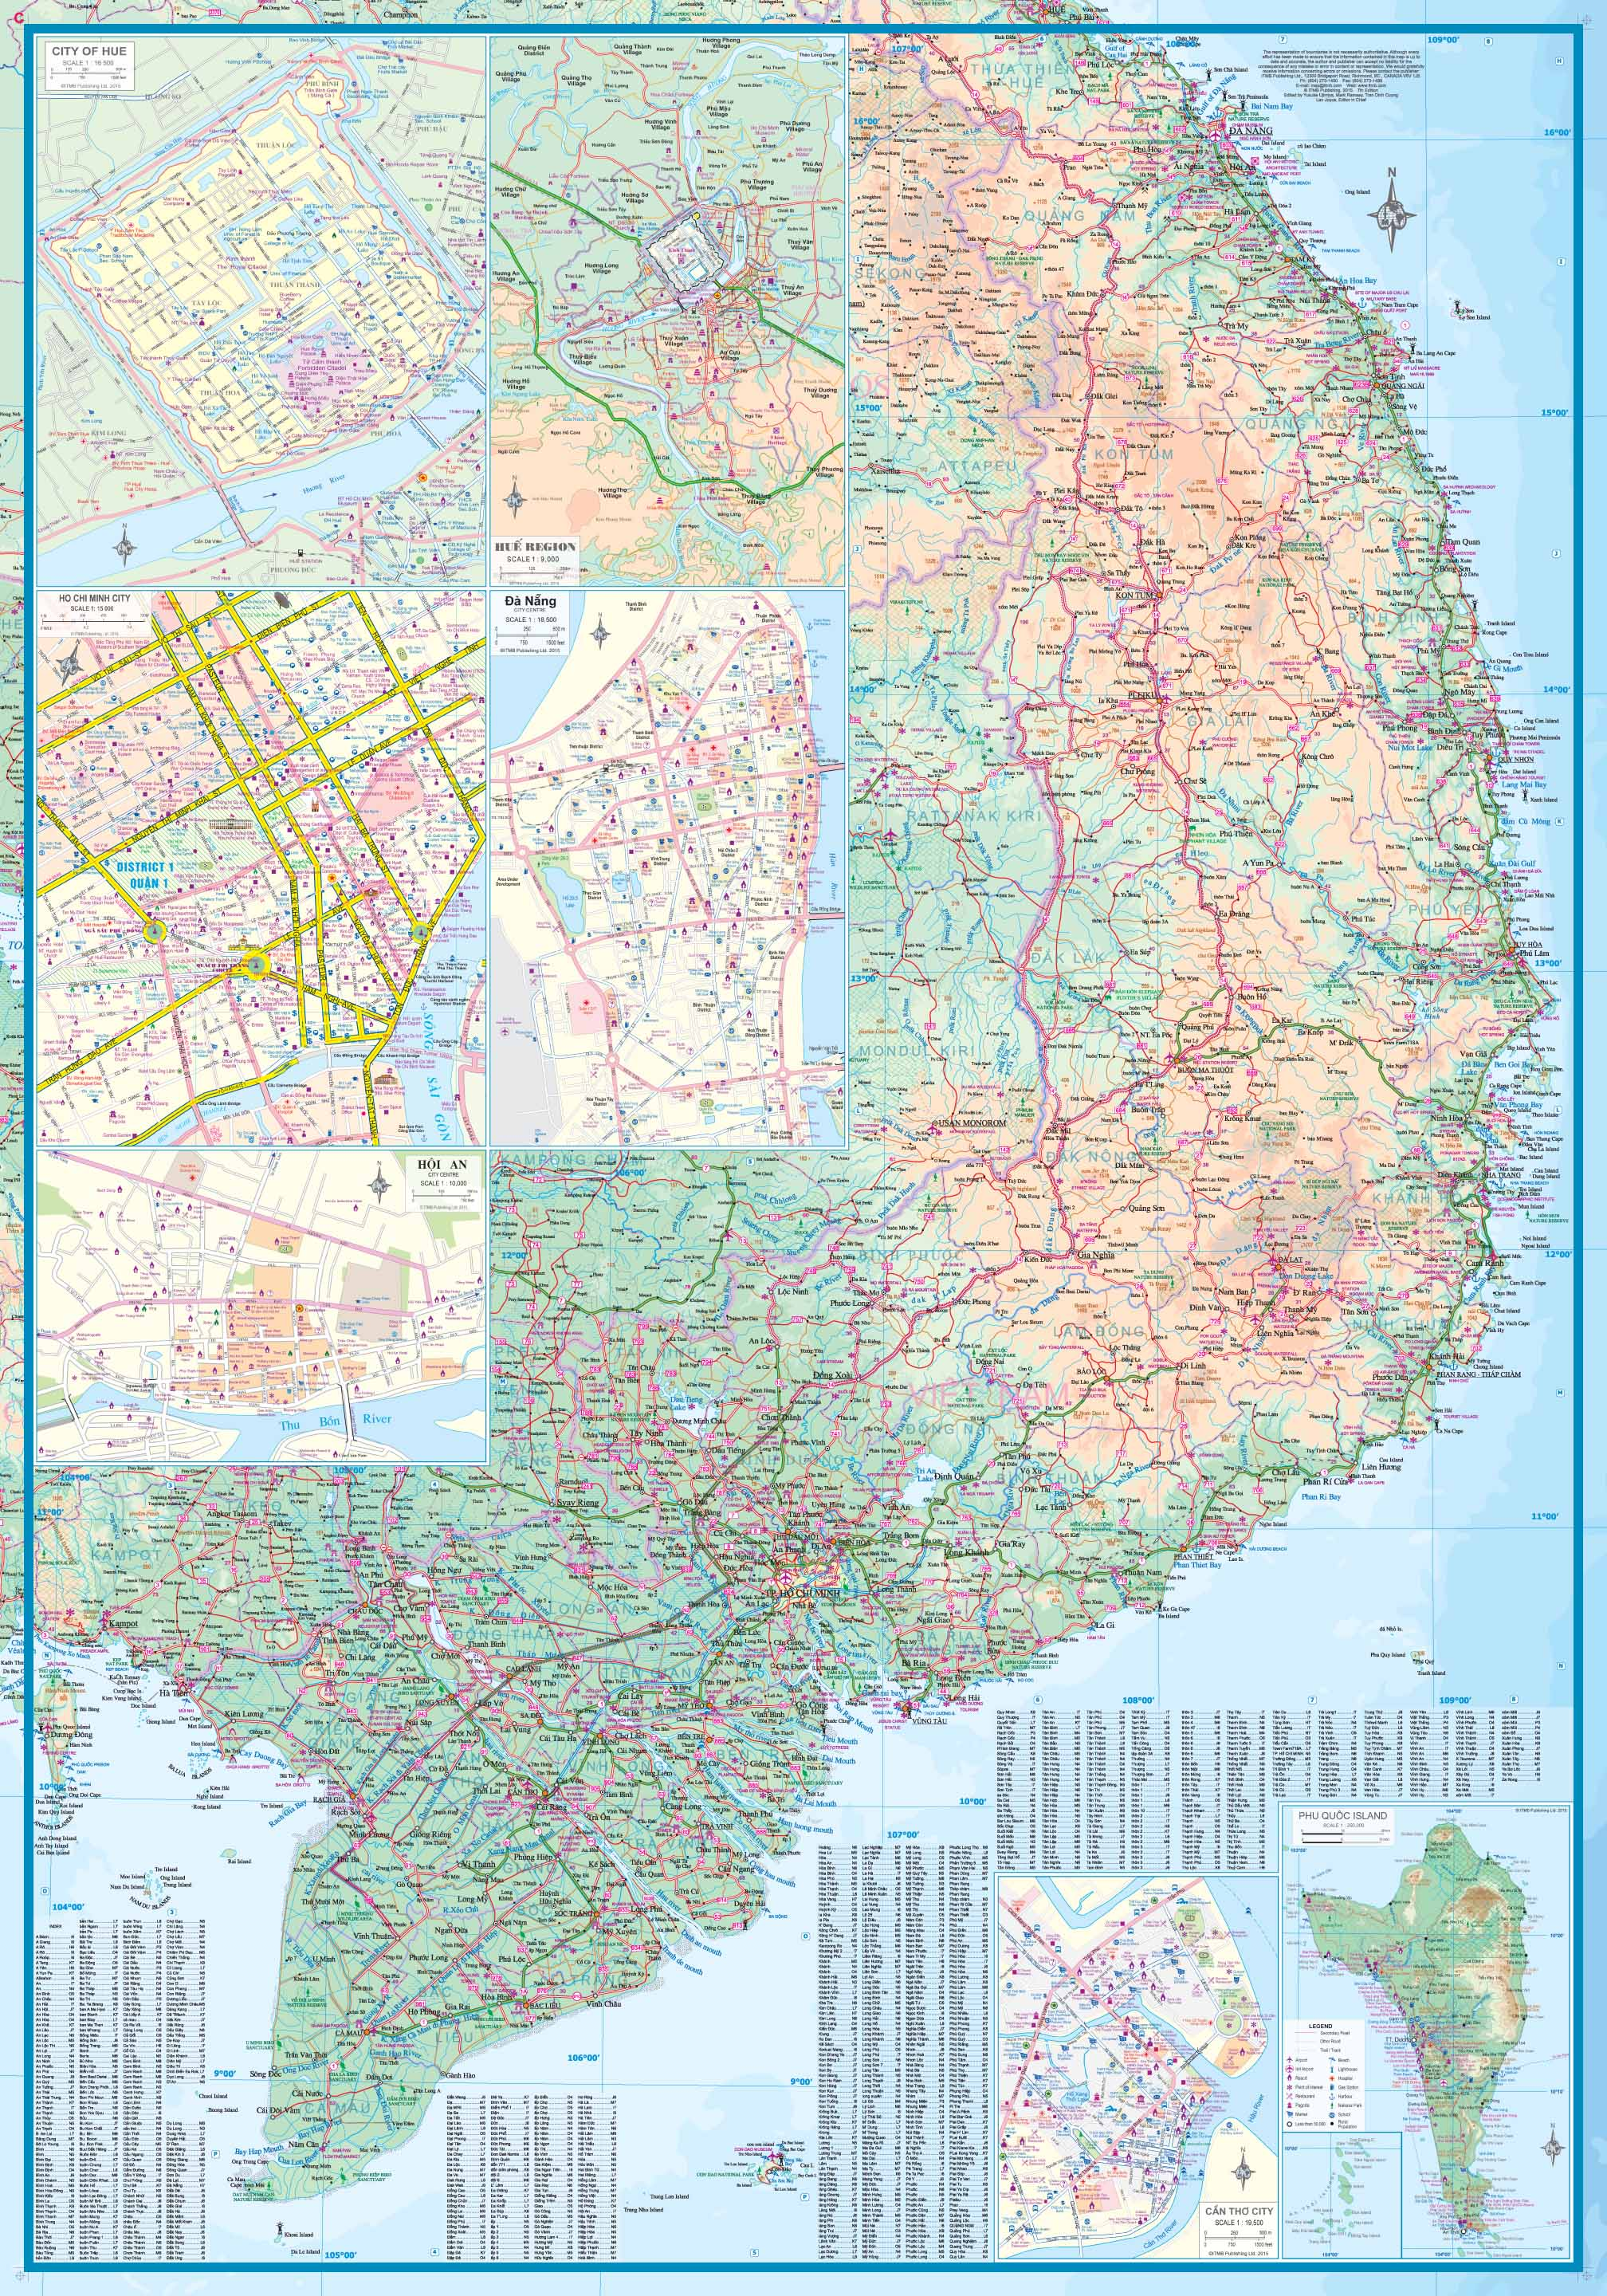 Maps for travel City Maps Road Maps Guides Globes Topographic – Travel Map Of Vietnam